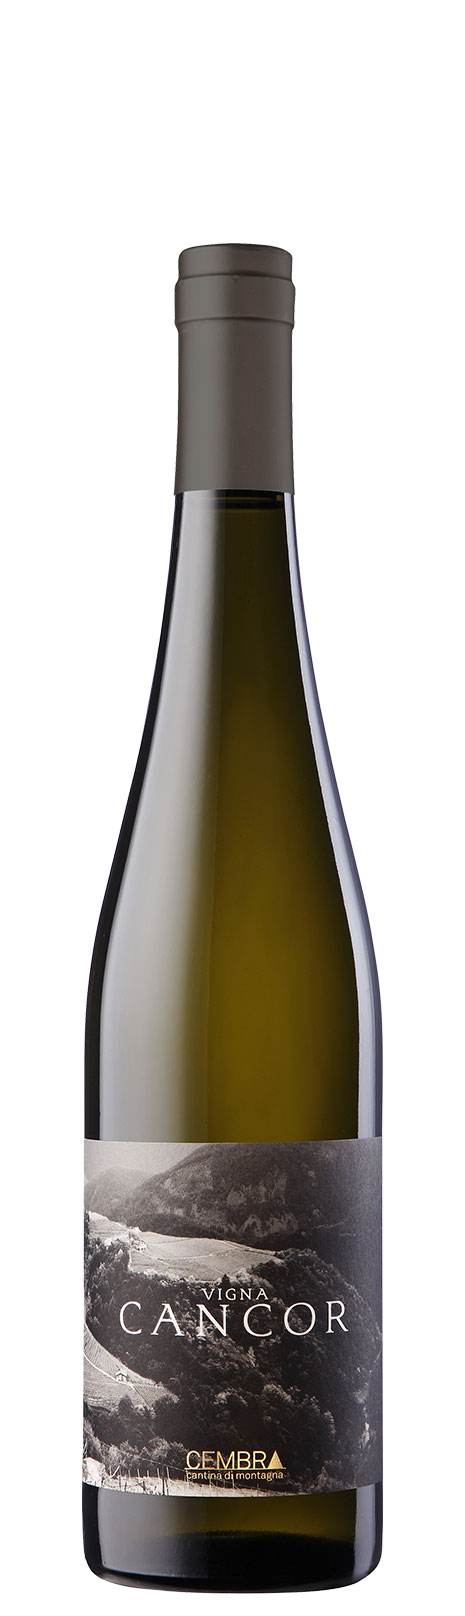 cembra-cancor-riesling-levigne